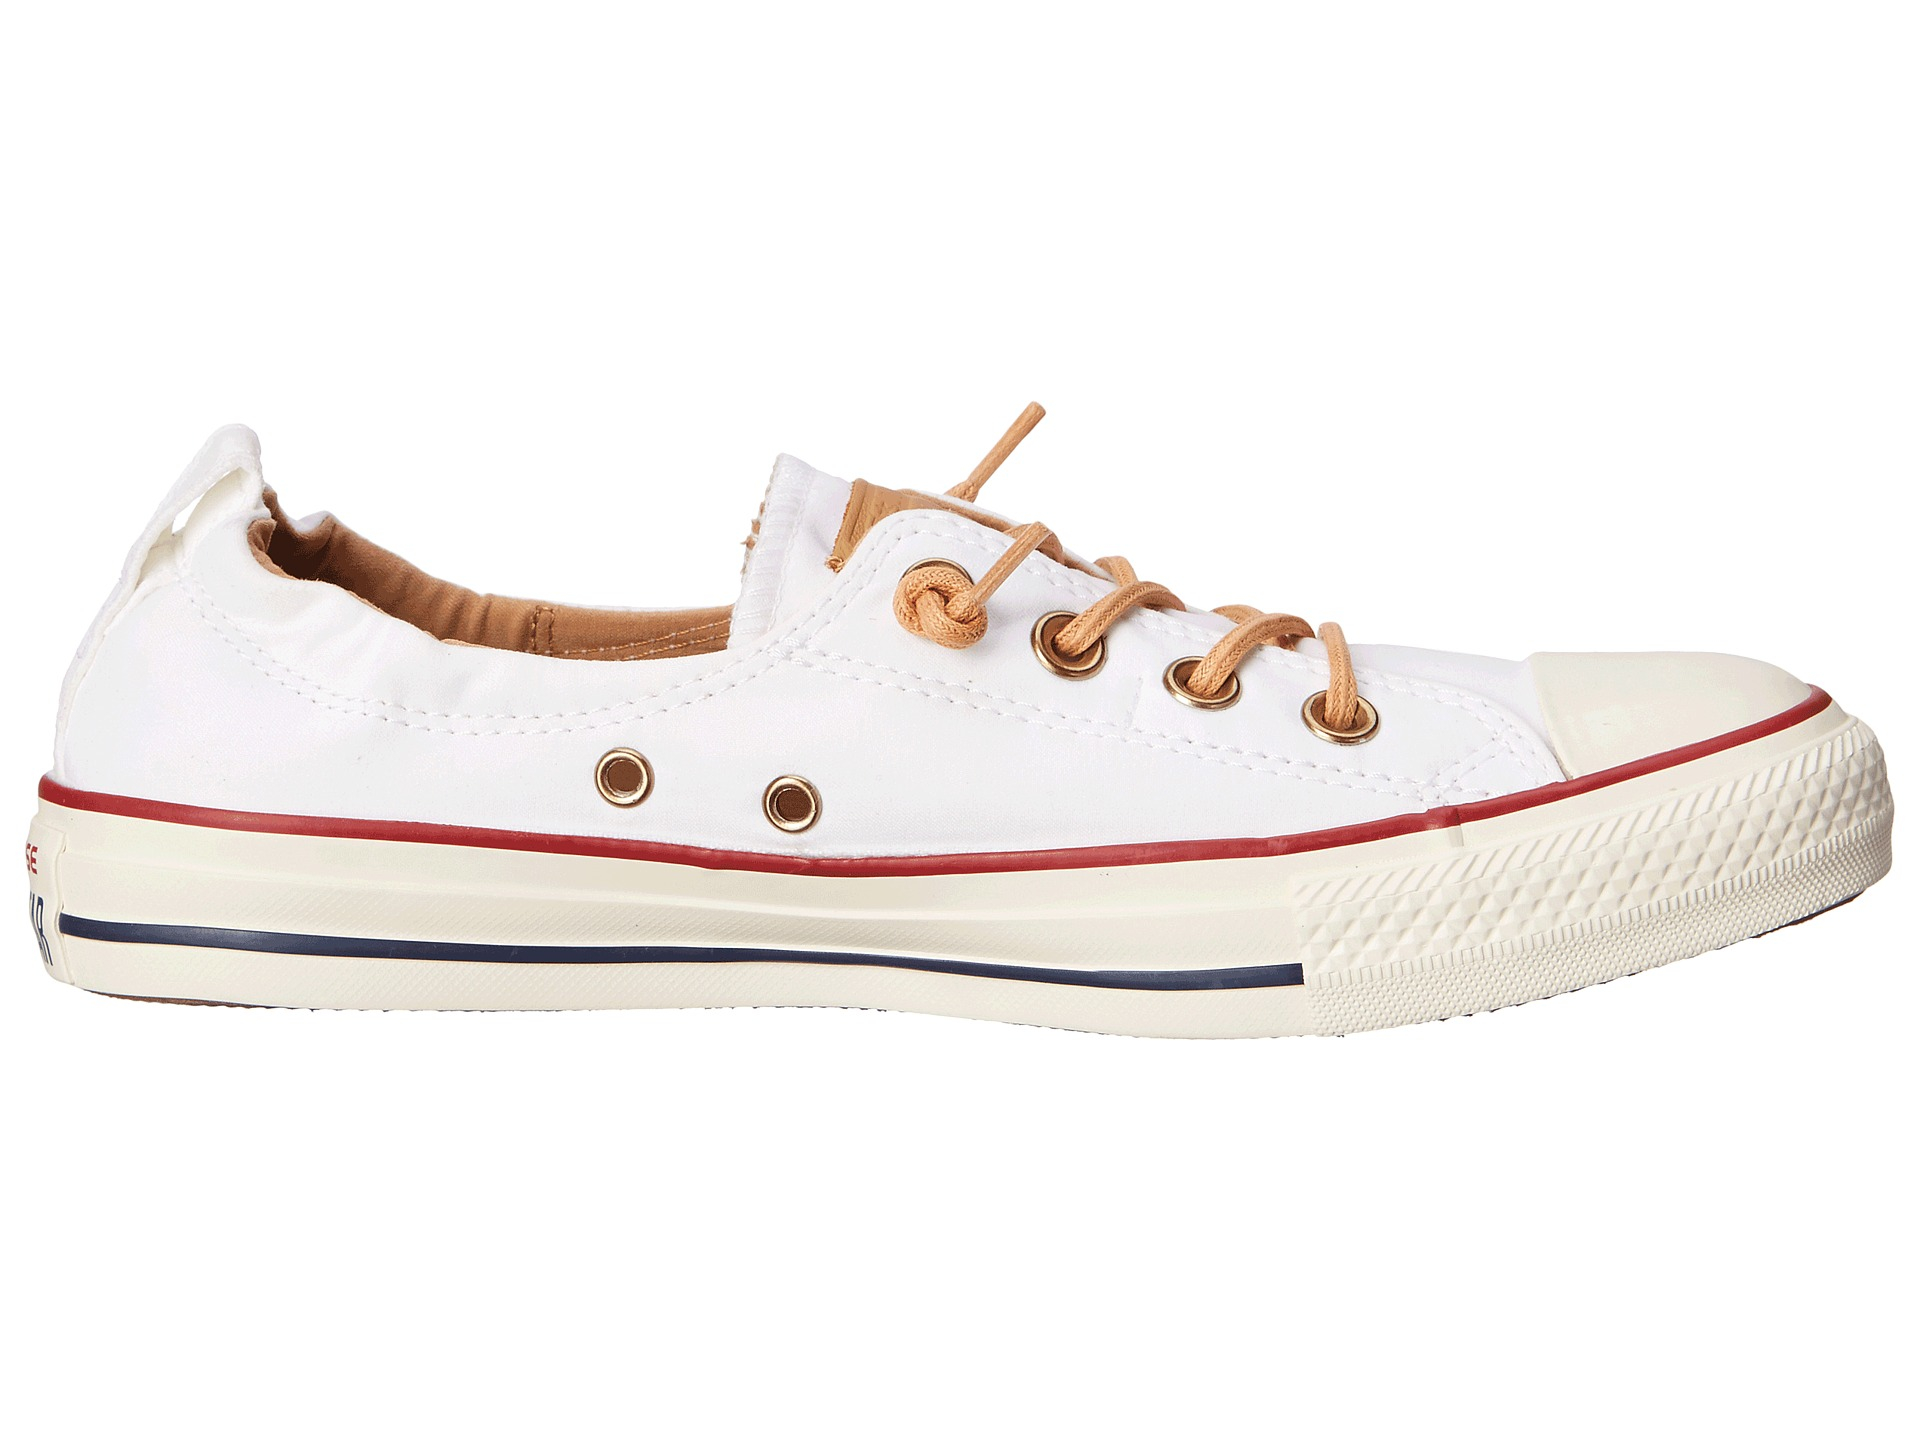 0a7fc151484a2f Gallery. Previously sold at  Zappos · Women s Converse Chuck Taylor Women s Leather  Sneakers ...